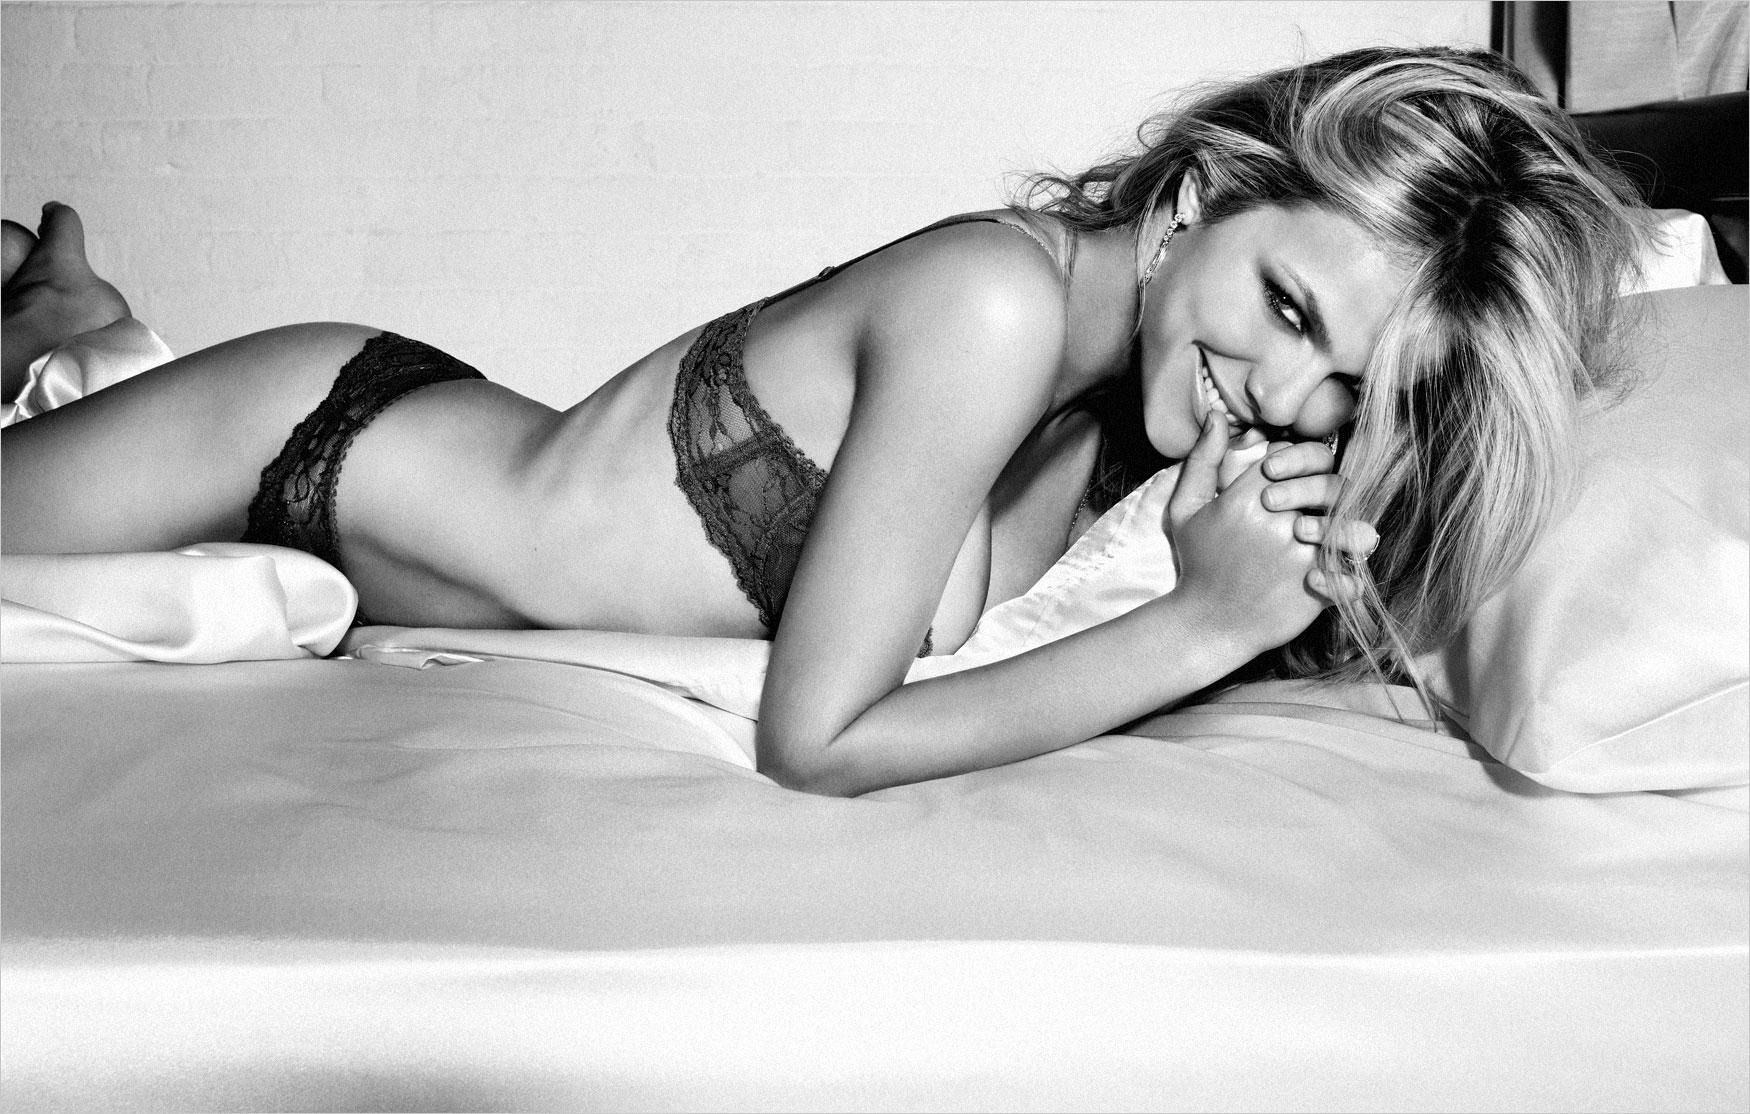 Brooklyn Decker | Esquire February 2011 | 'Sexiest Woman Alive' - SensualityNews.com - Fashion Editorials, Art & Sensual Living